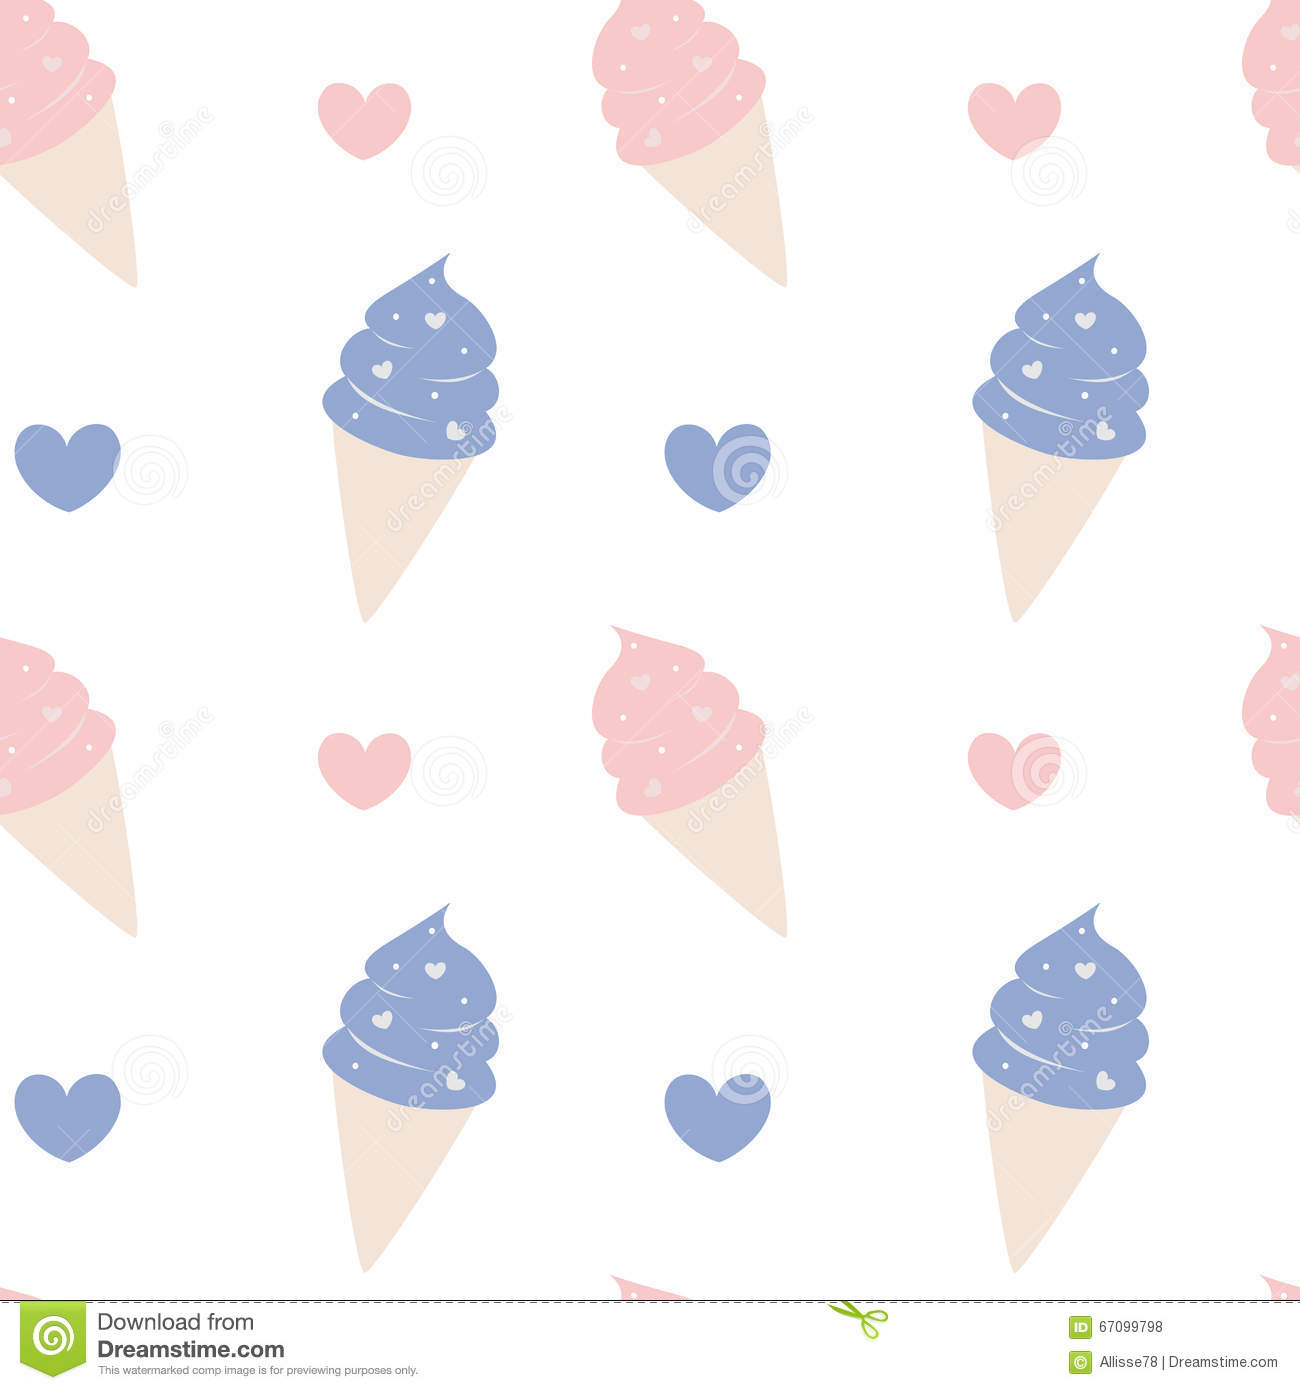 Cute Ice Cream Background: Cute Cartoon Ice Cream Pink And Blue Lovely Seamless